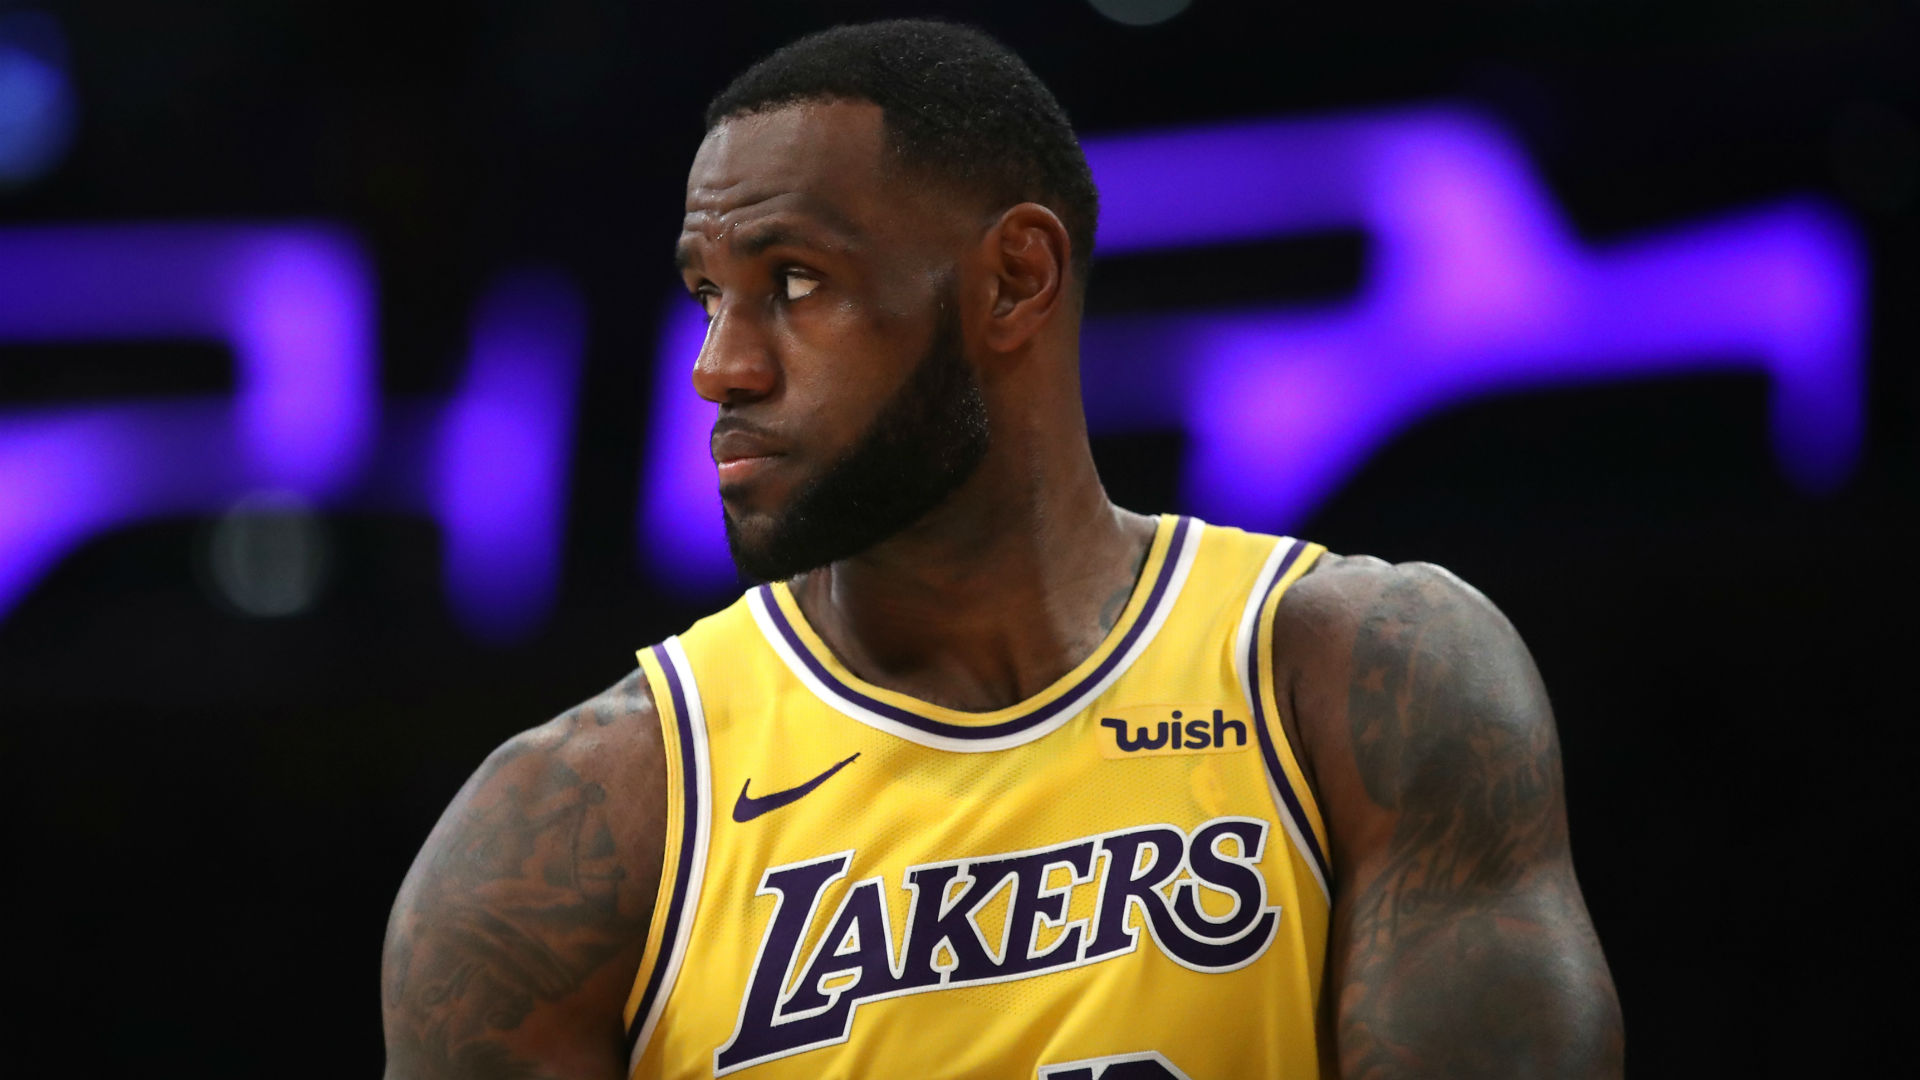 Lakers rumors: Los Angeles eyeing third max contract player, looking to shed salary